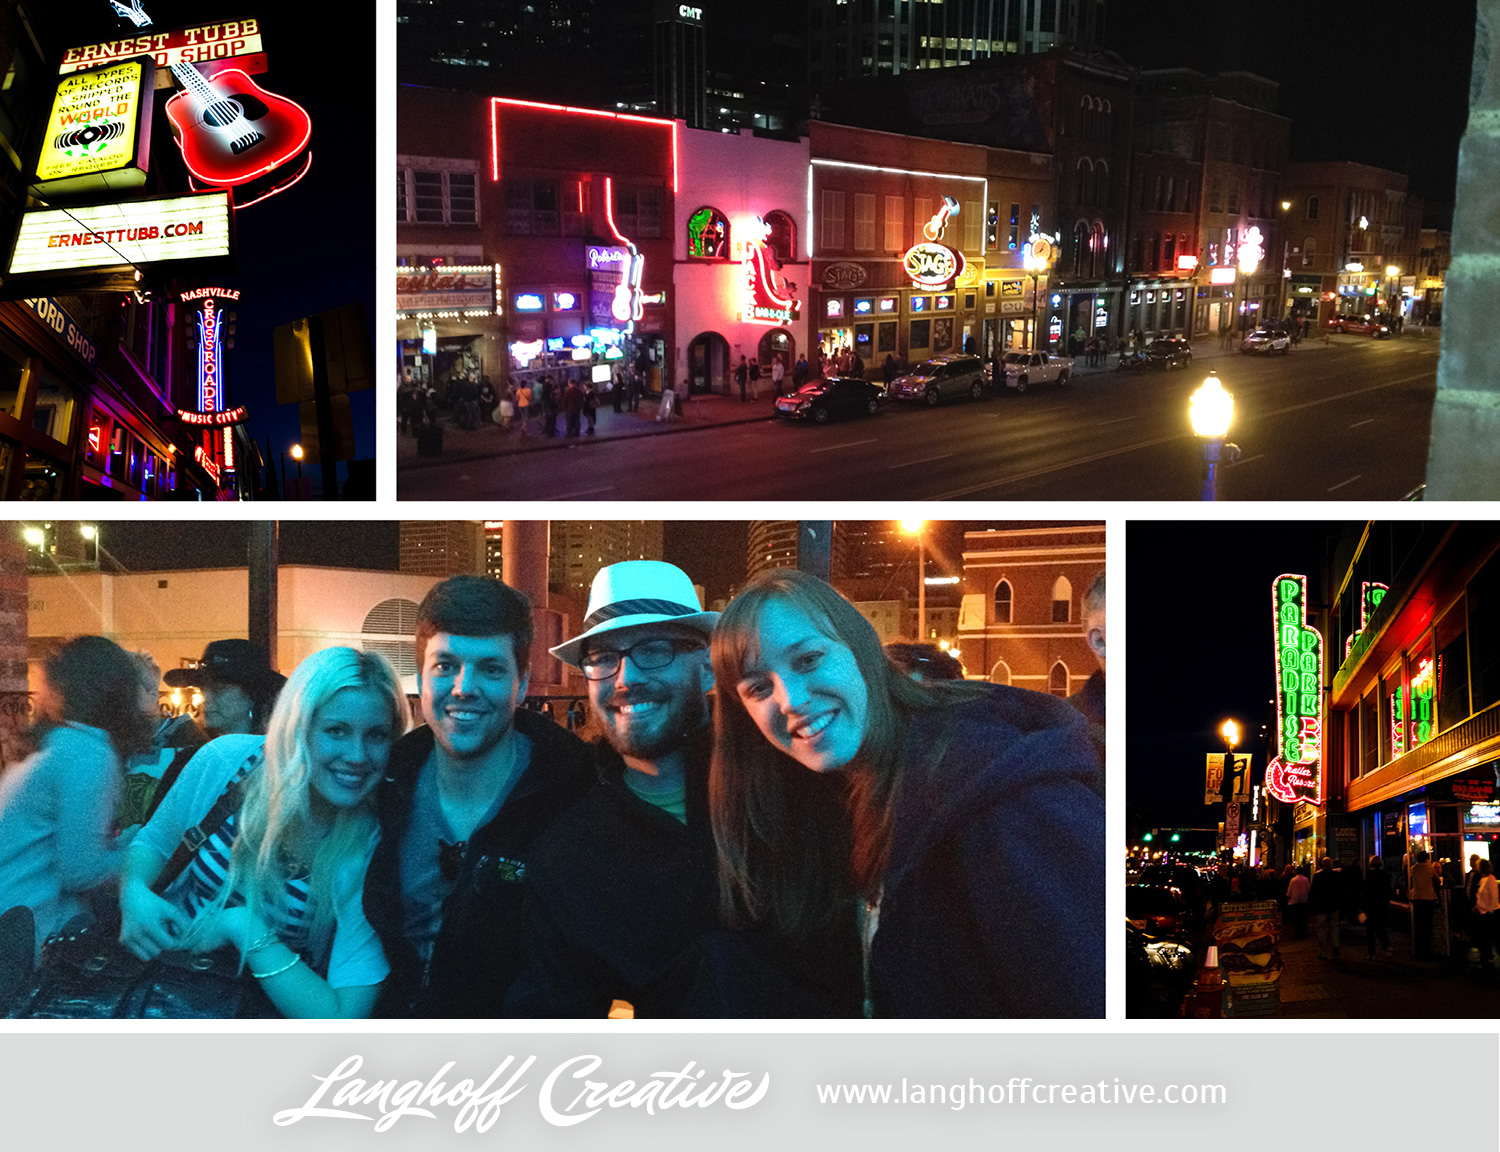 Road trip stop #1 was Nashville. Love these iPhone pics of some of the lights on Broadway. We had so much fun with Maison and Caleb, as well as with Jamie—one of Chad's close friends from elementary & high school. She lives near Nashville now, so she showed us around. Dinner at Honky Tonk was a blast!